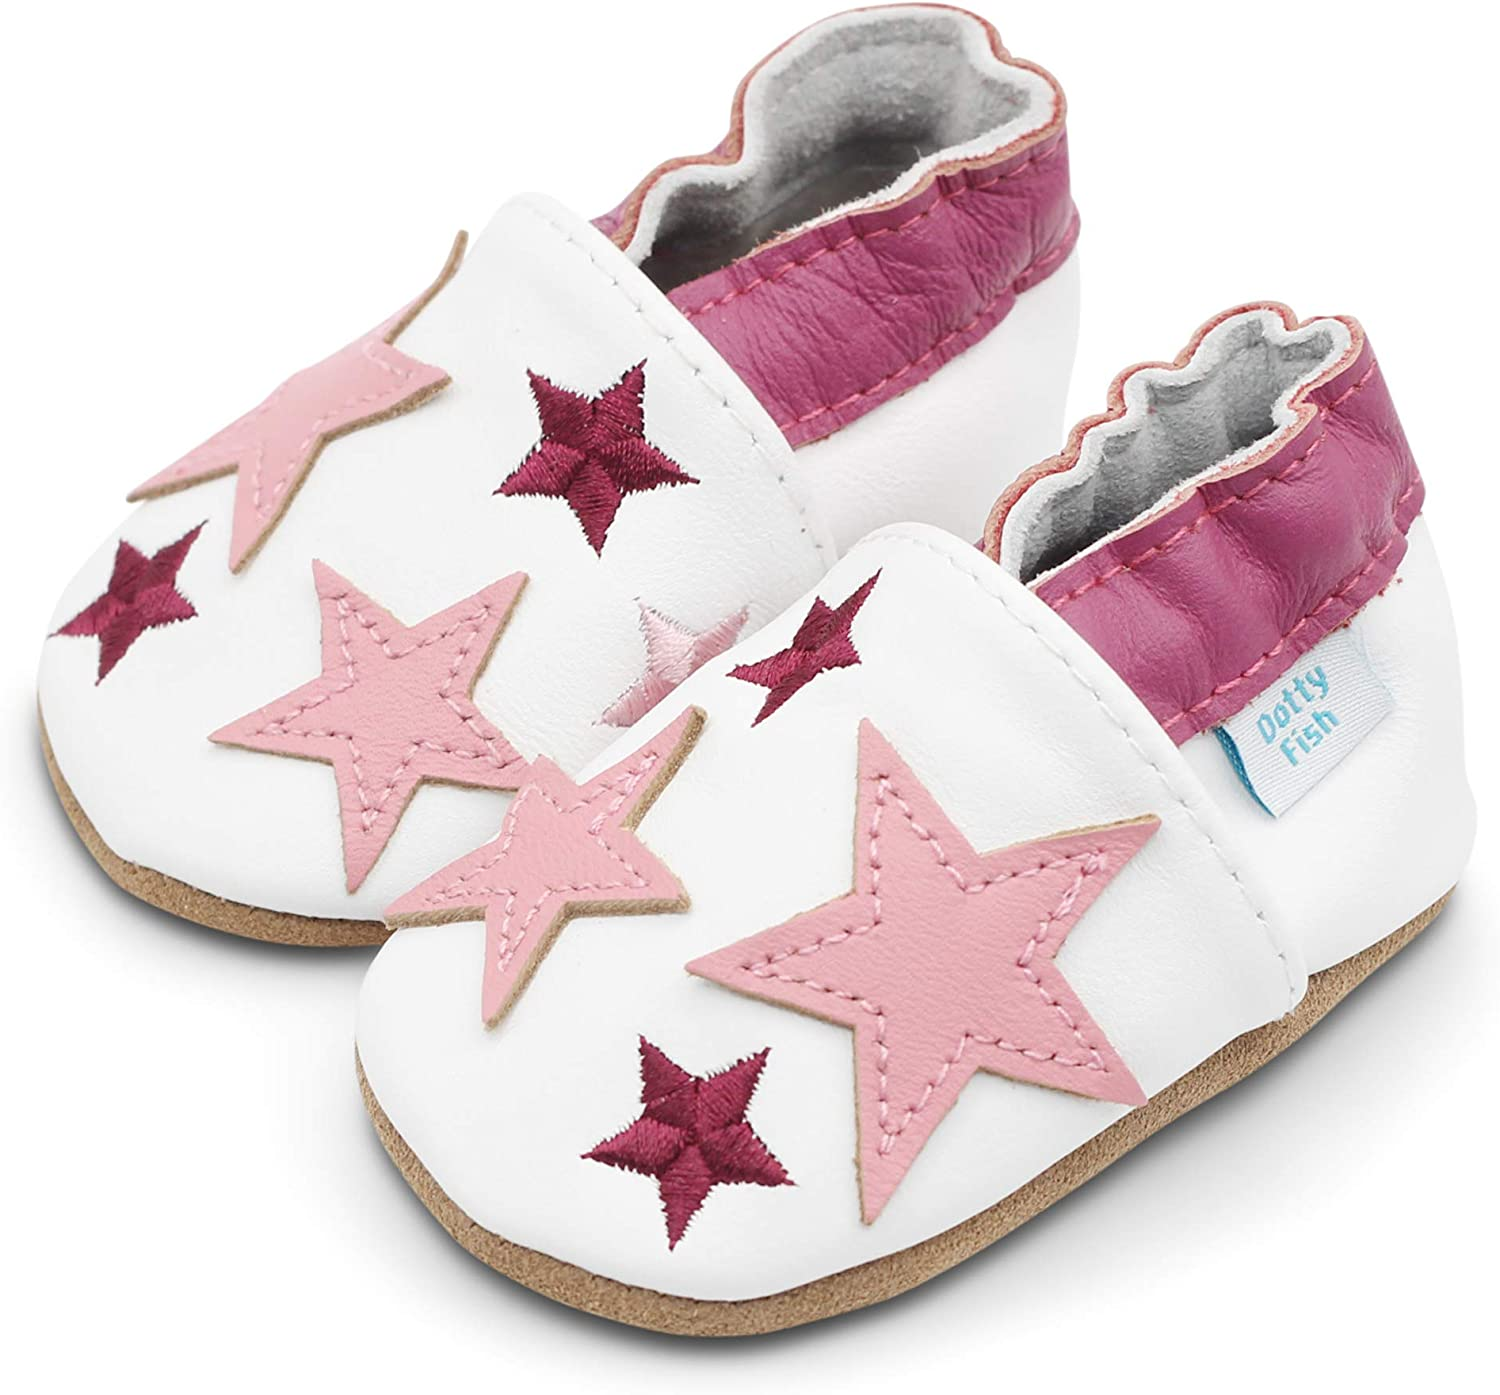 Non Slip Dotty Fish Soft Leather Baby Shoes Toddler Shoes. Boys and Girls with Navy Blue 0-6 Months to 4-5 Years Pink and Grey Stars